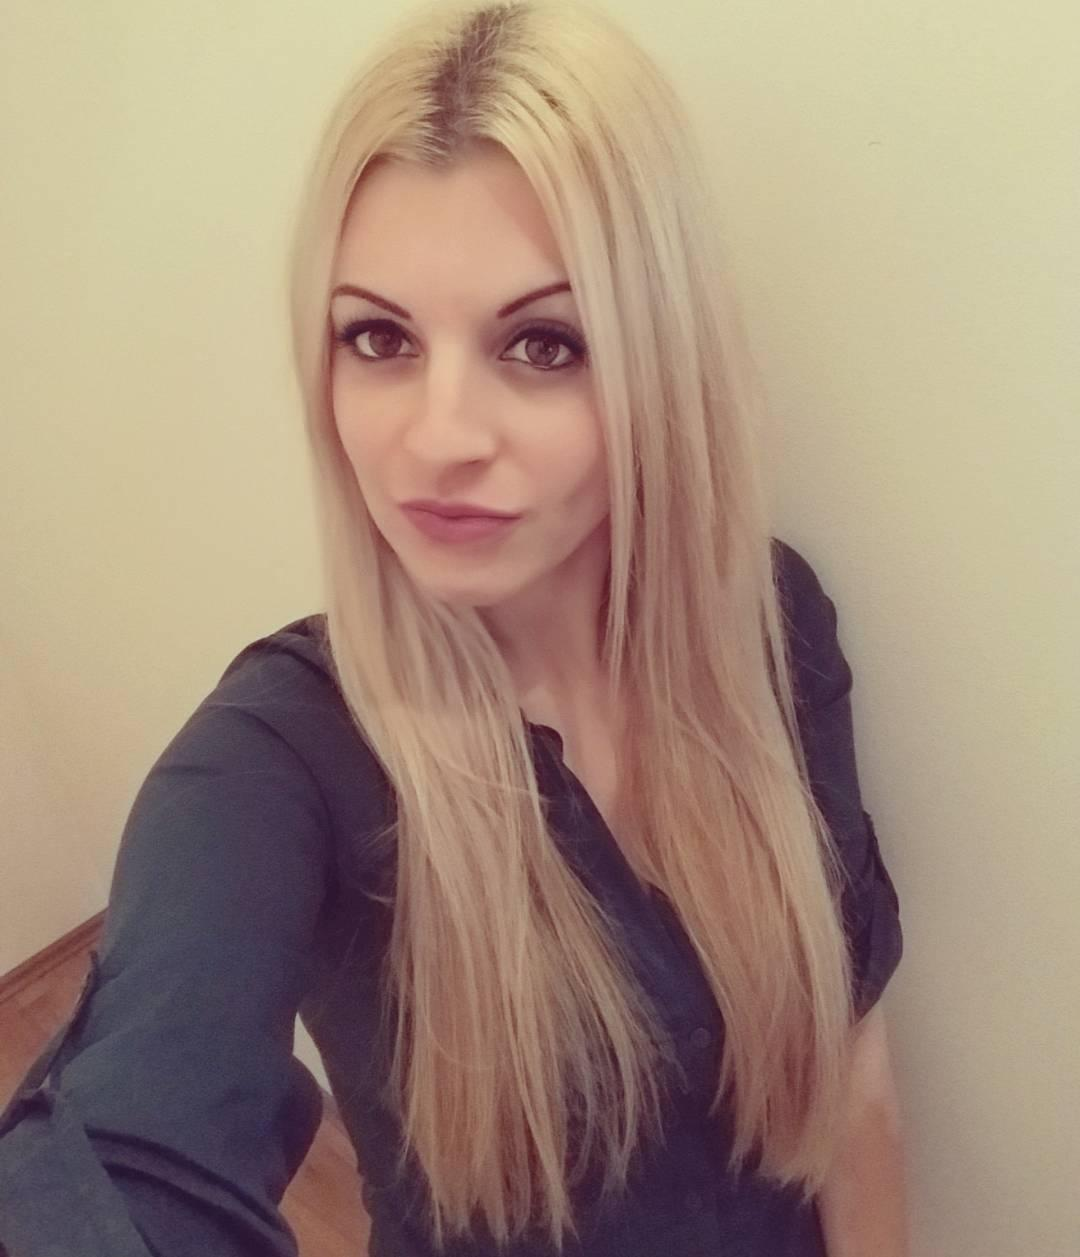 Picture with tags: HD, Blonde, Dating, Interesting, Girl